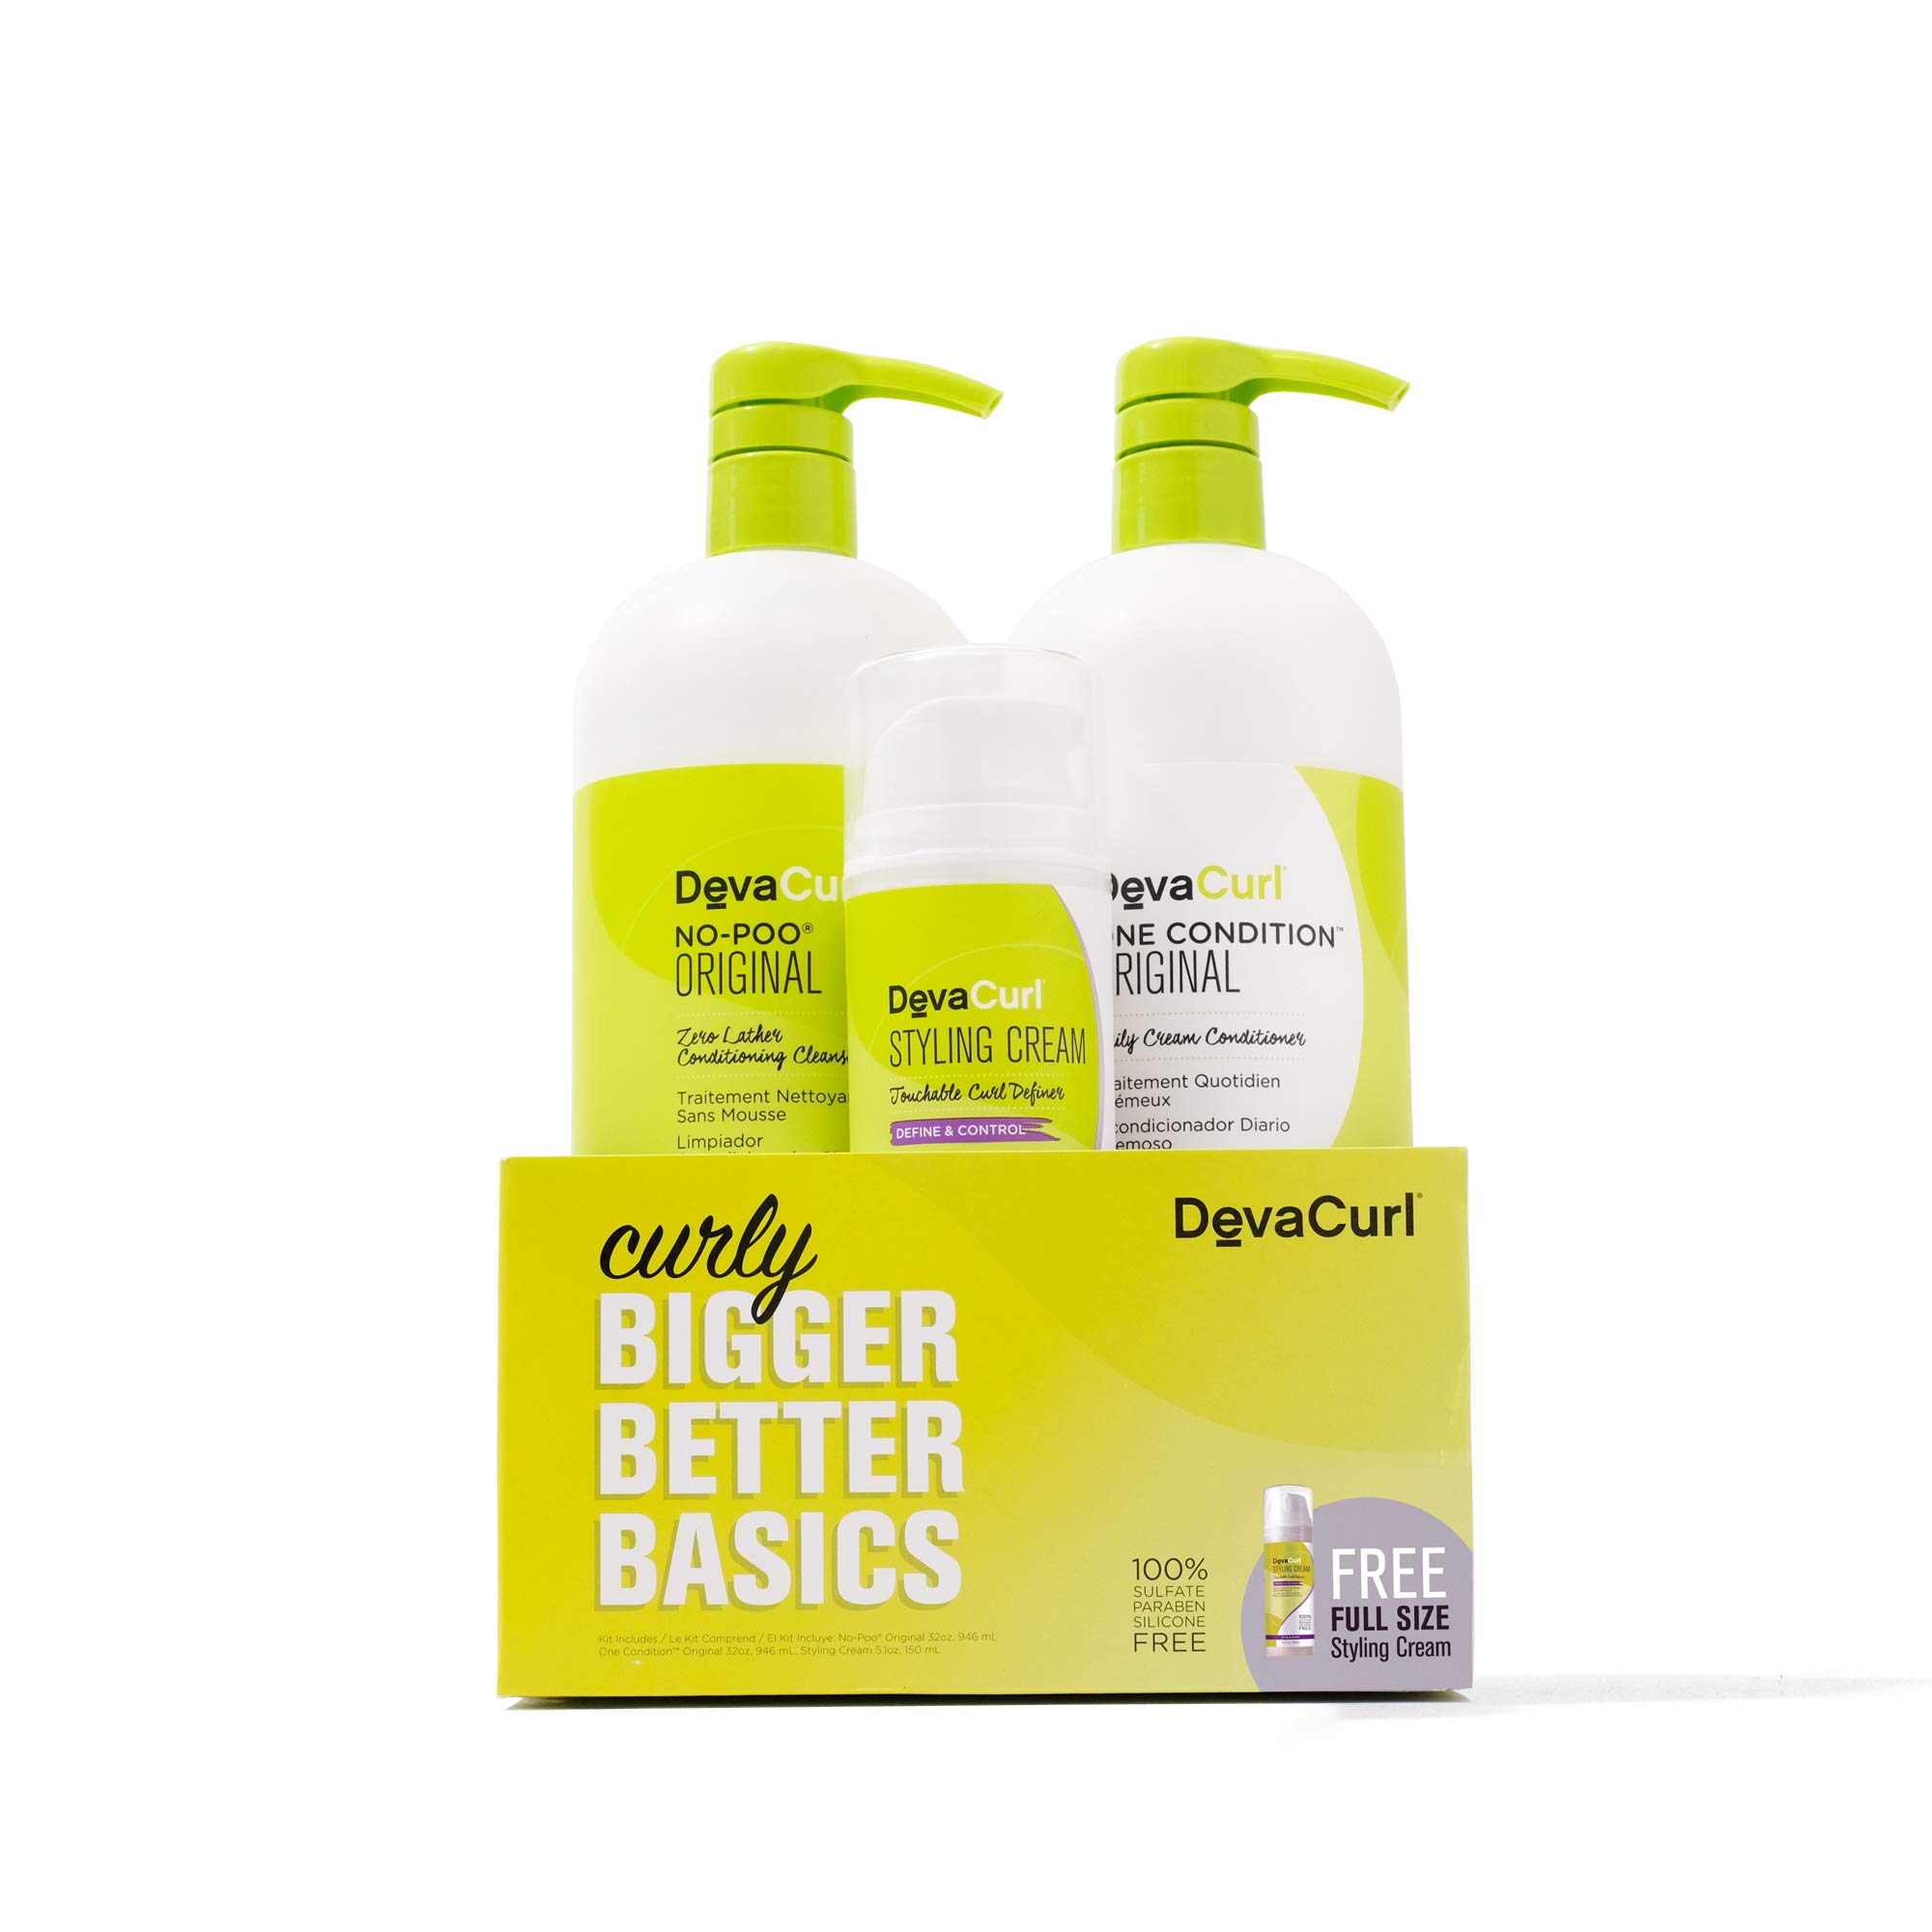 DevaCurl Bigger Better Basics - Curly Care Kit by DevaCurl